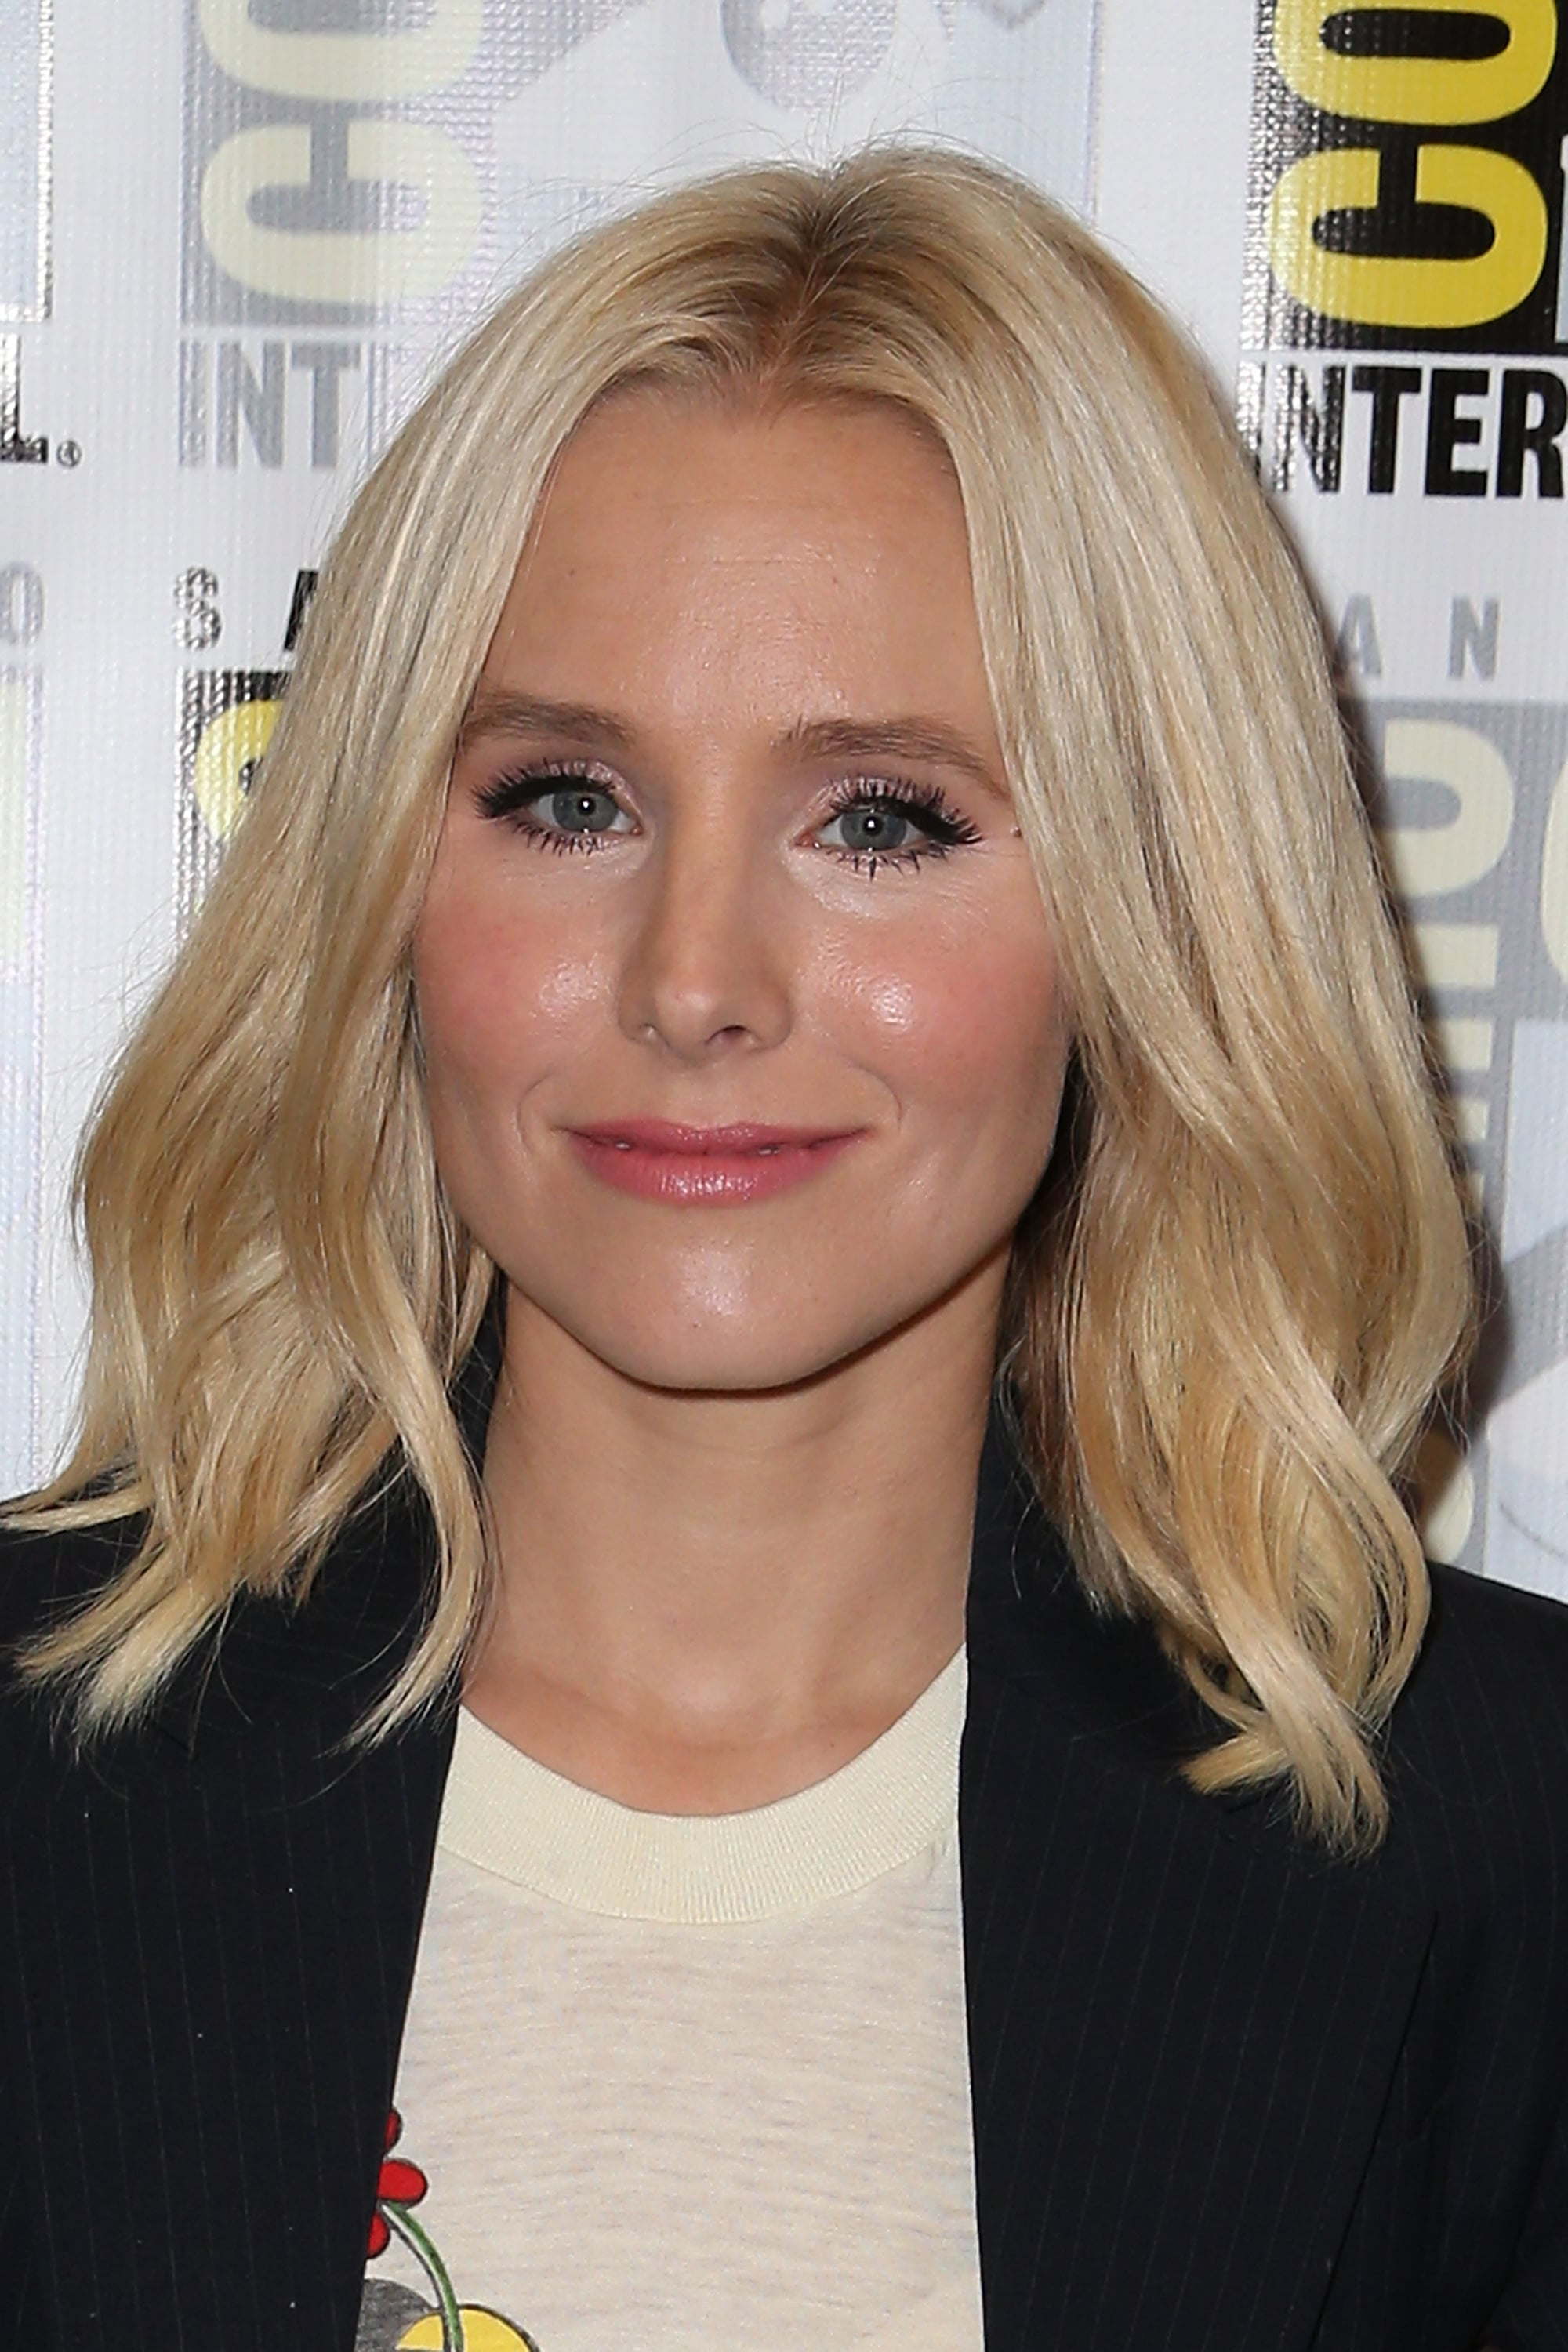 Kristen Bell on Having a Lob, Being a Mom, and Loving